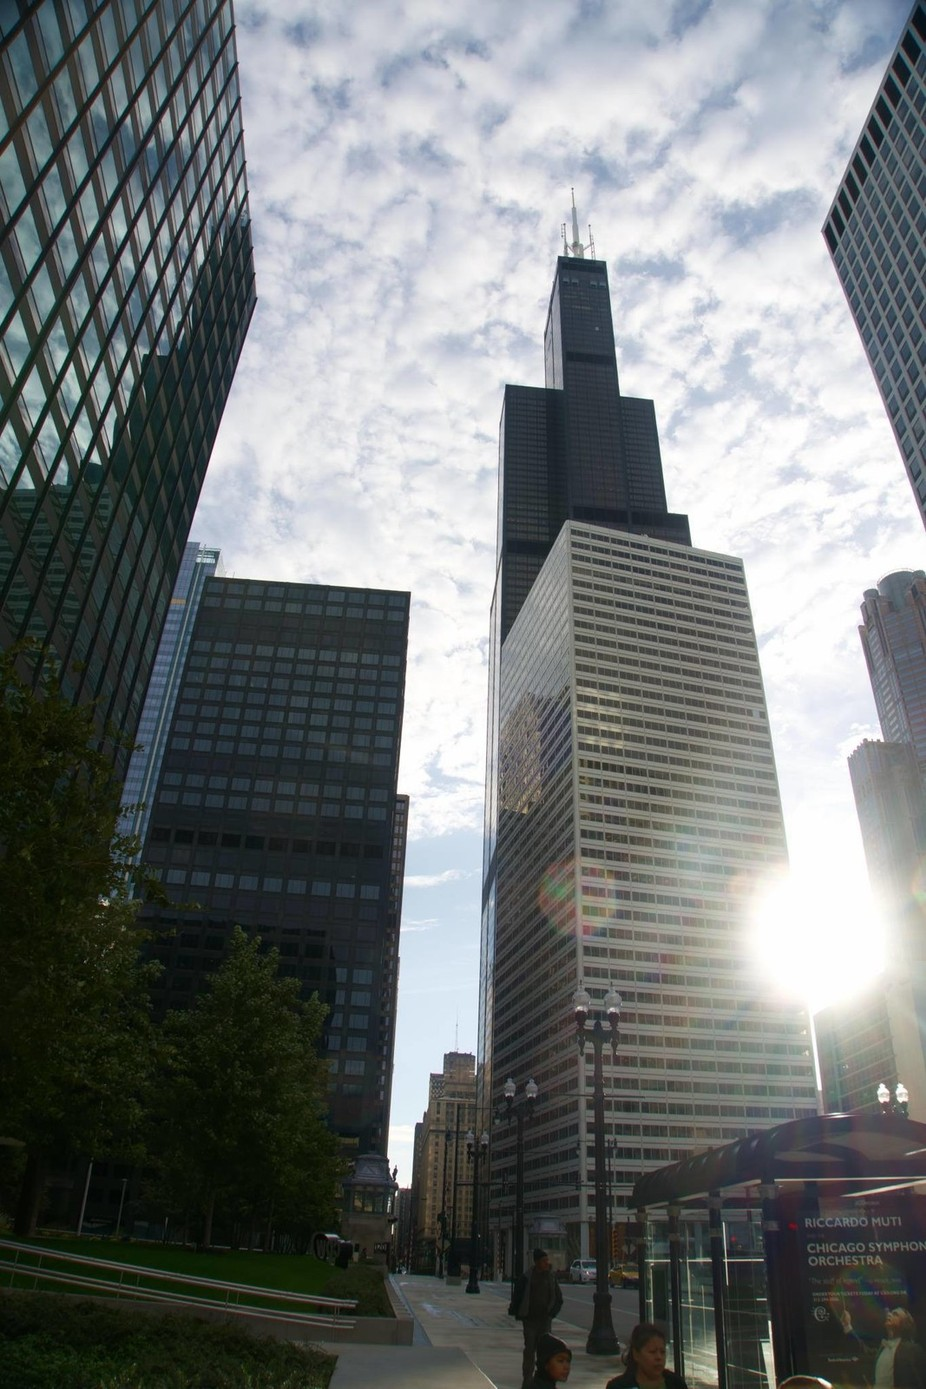 Some of the tallest buildings in the world once graced Chicago skyline.